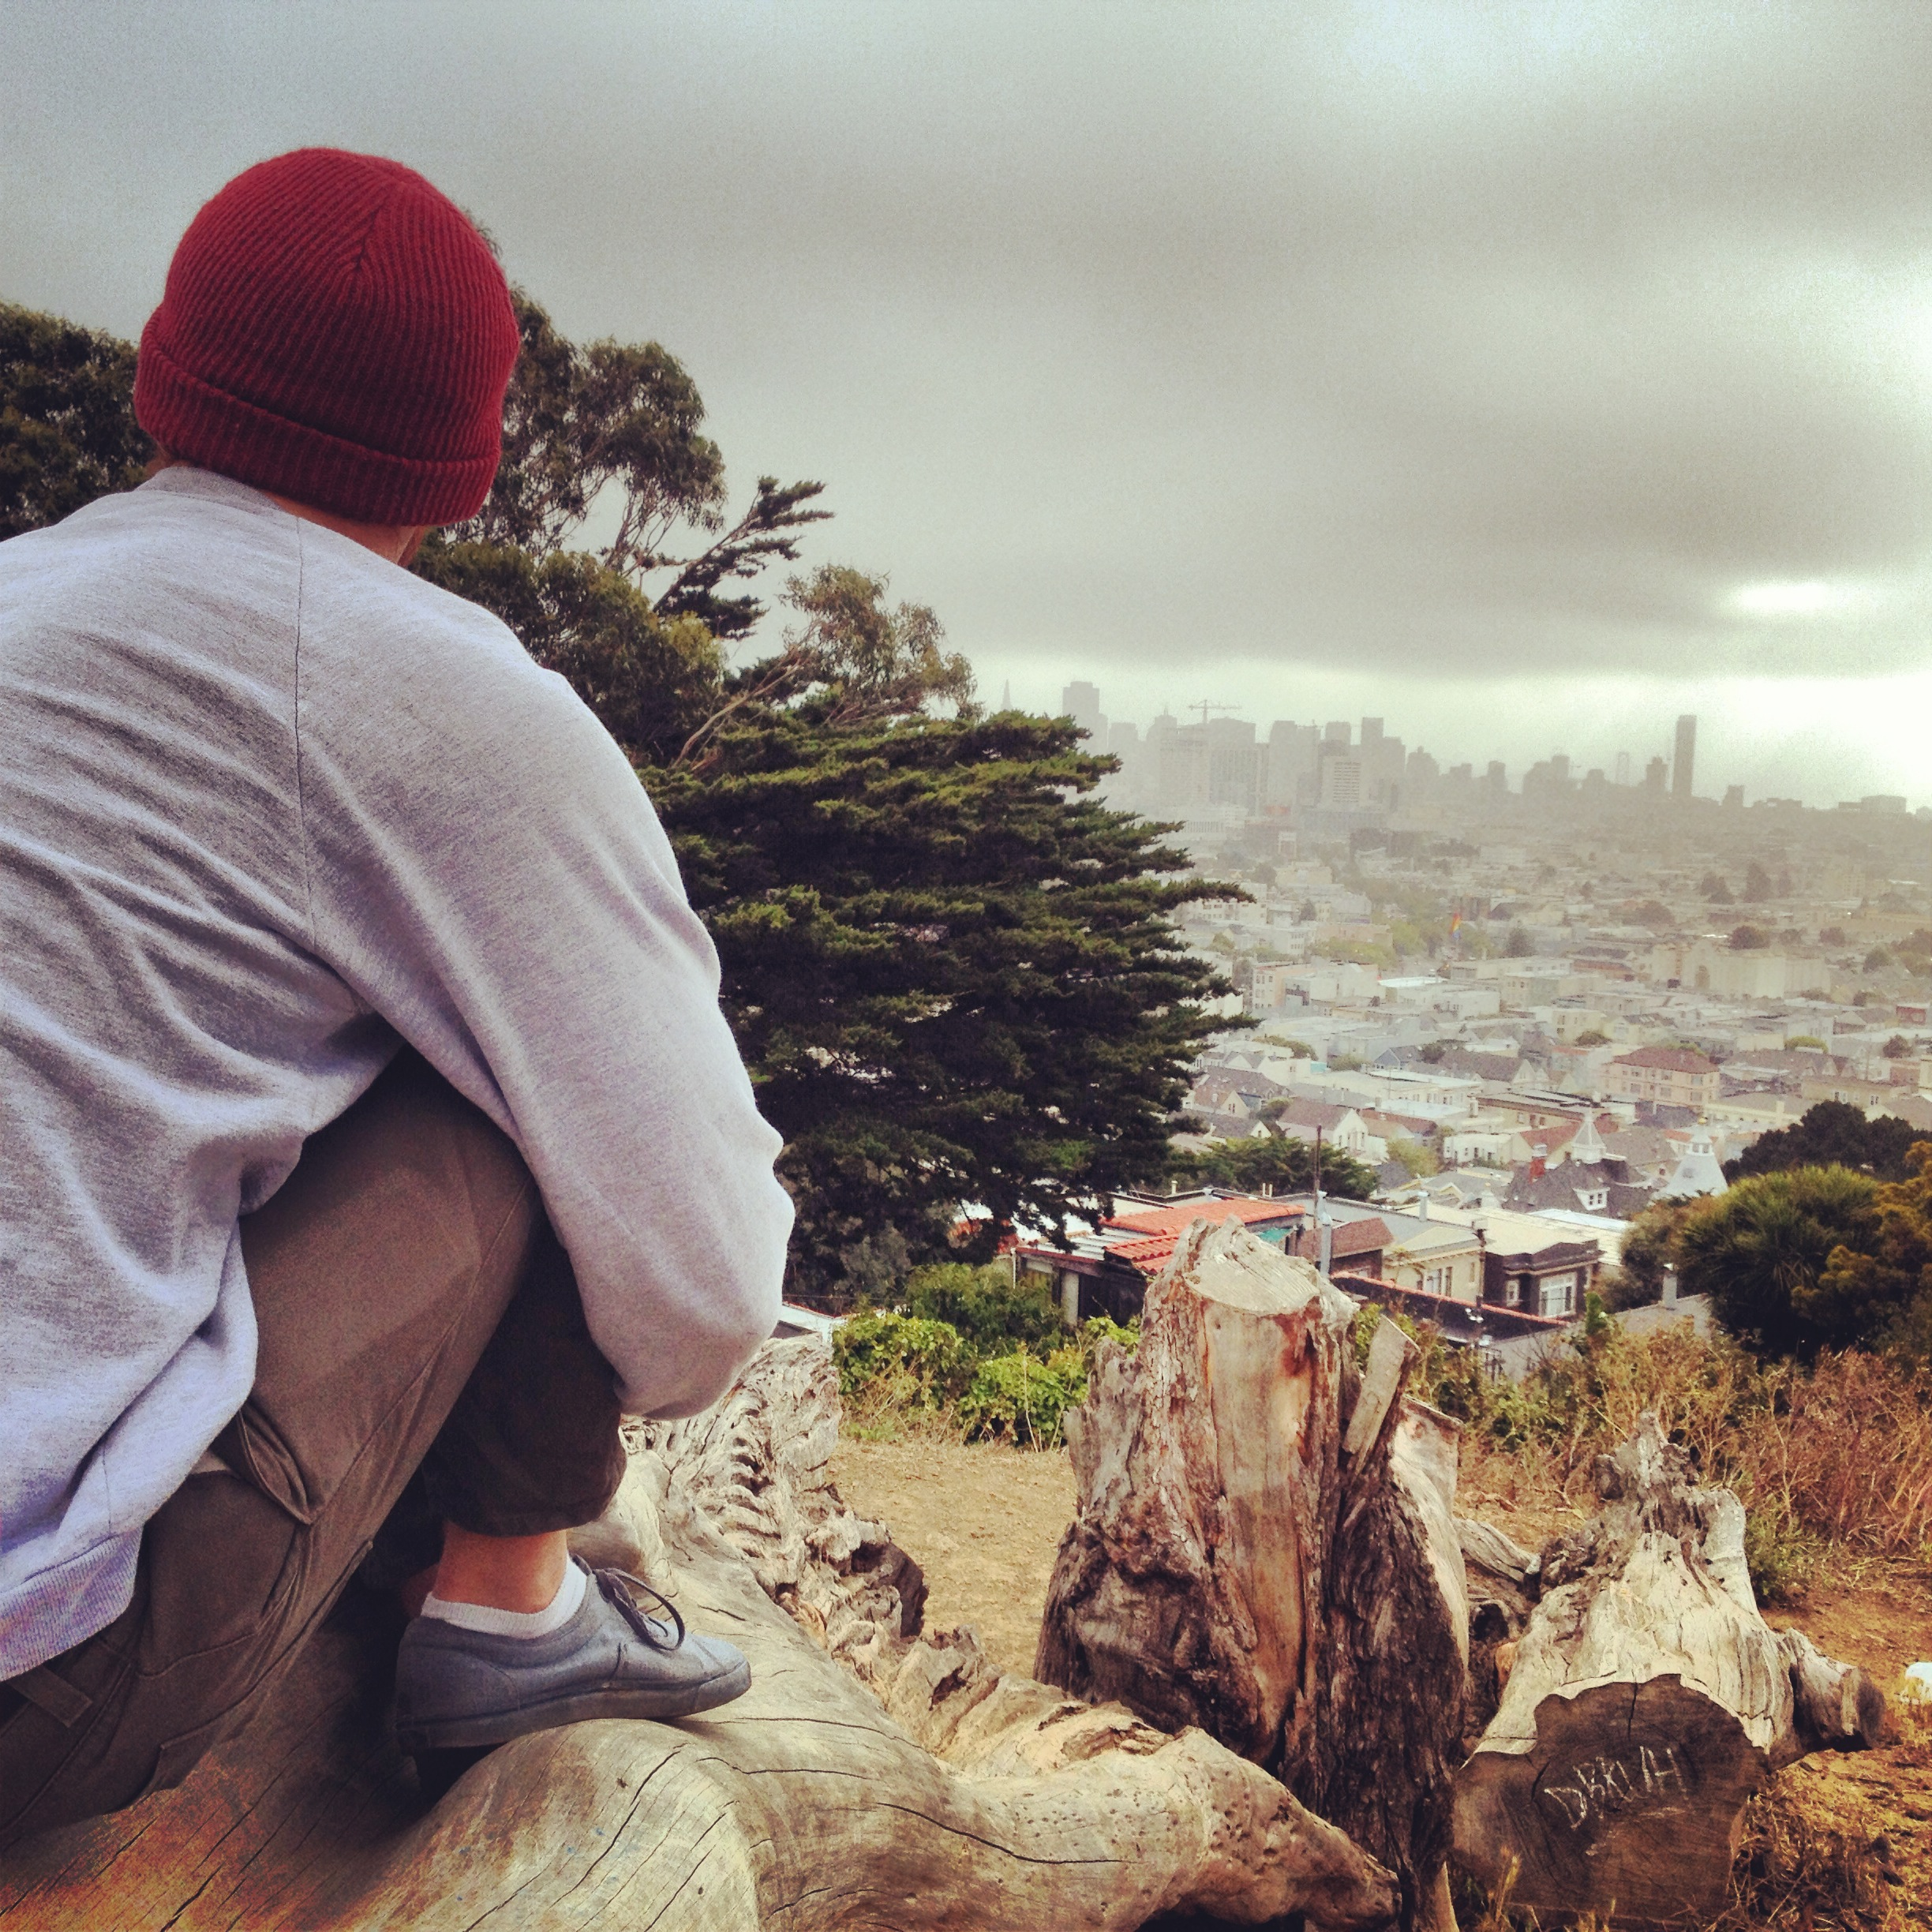 Friday morning hike to Kite Hill with Scotty.